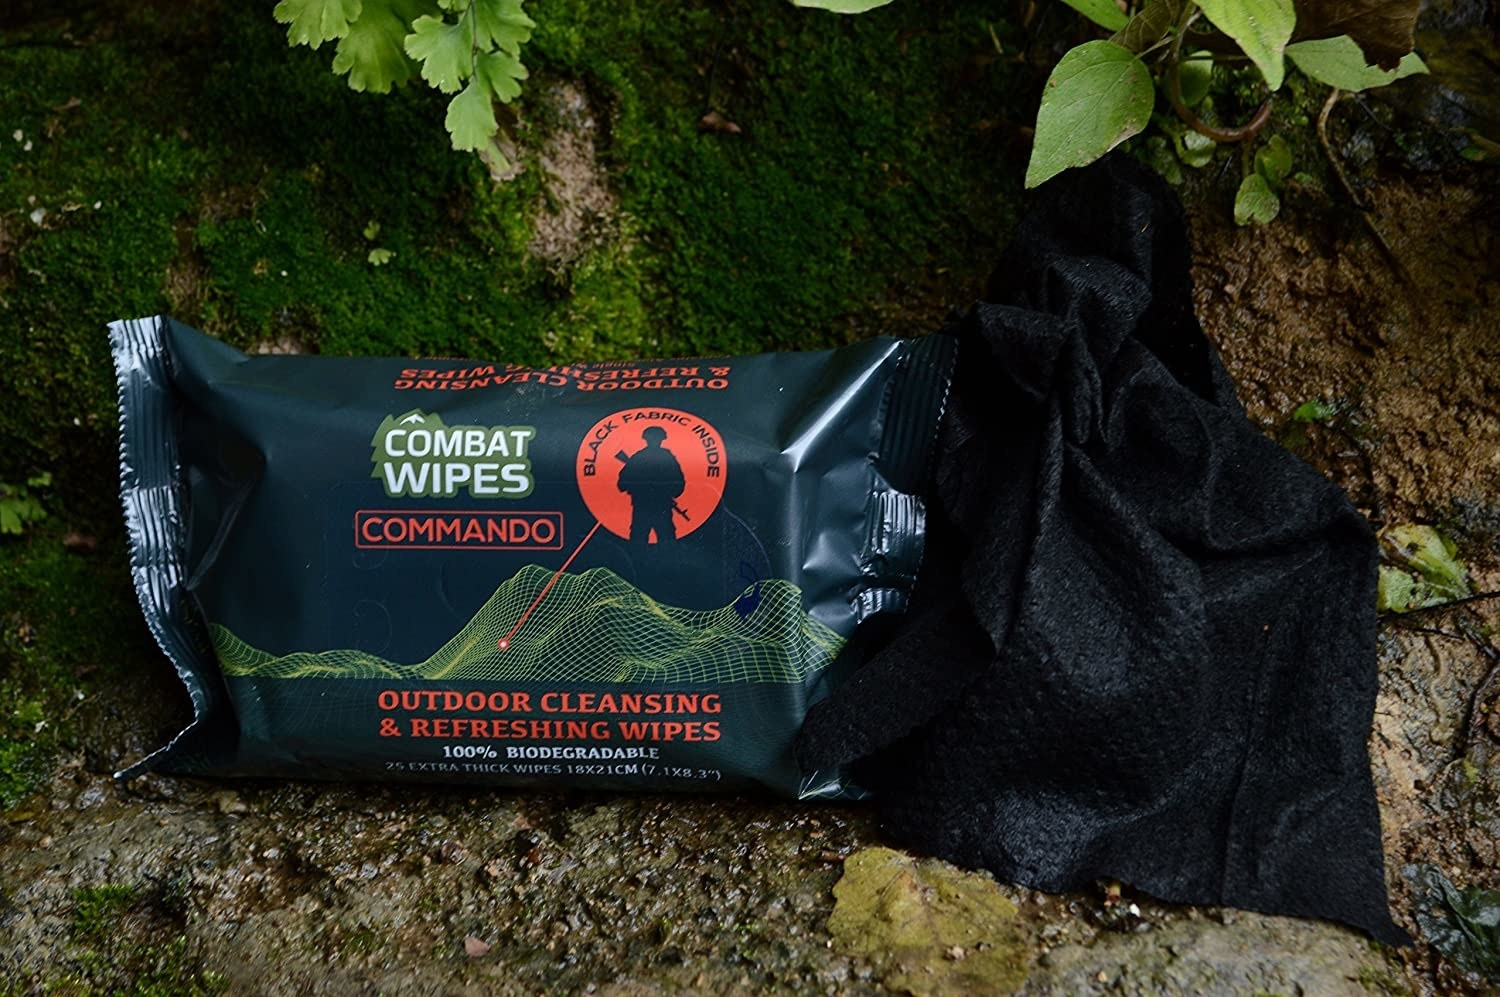 A pack of wipes on a rock